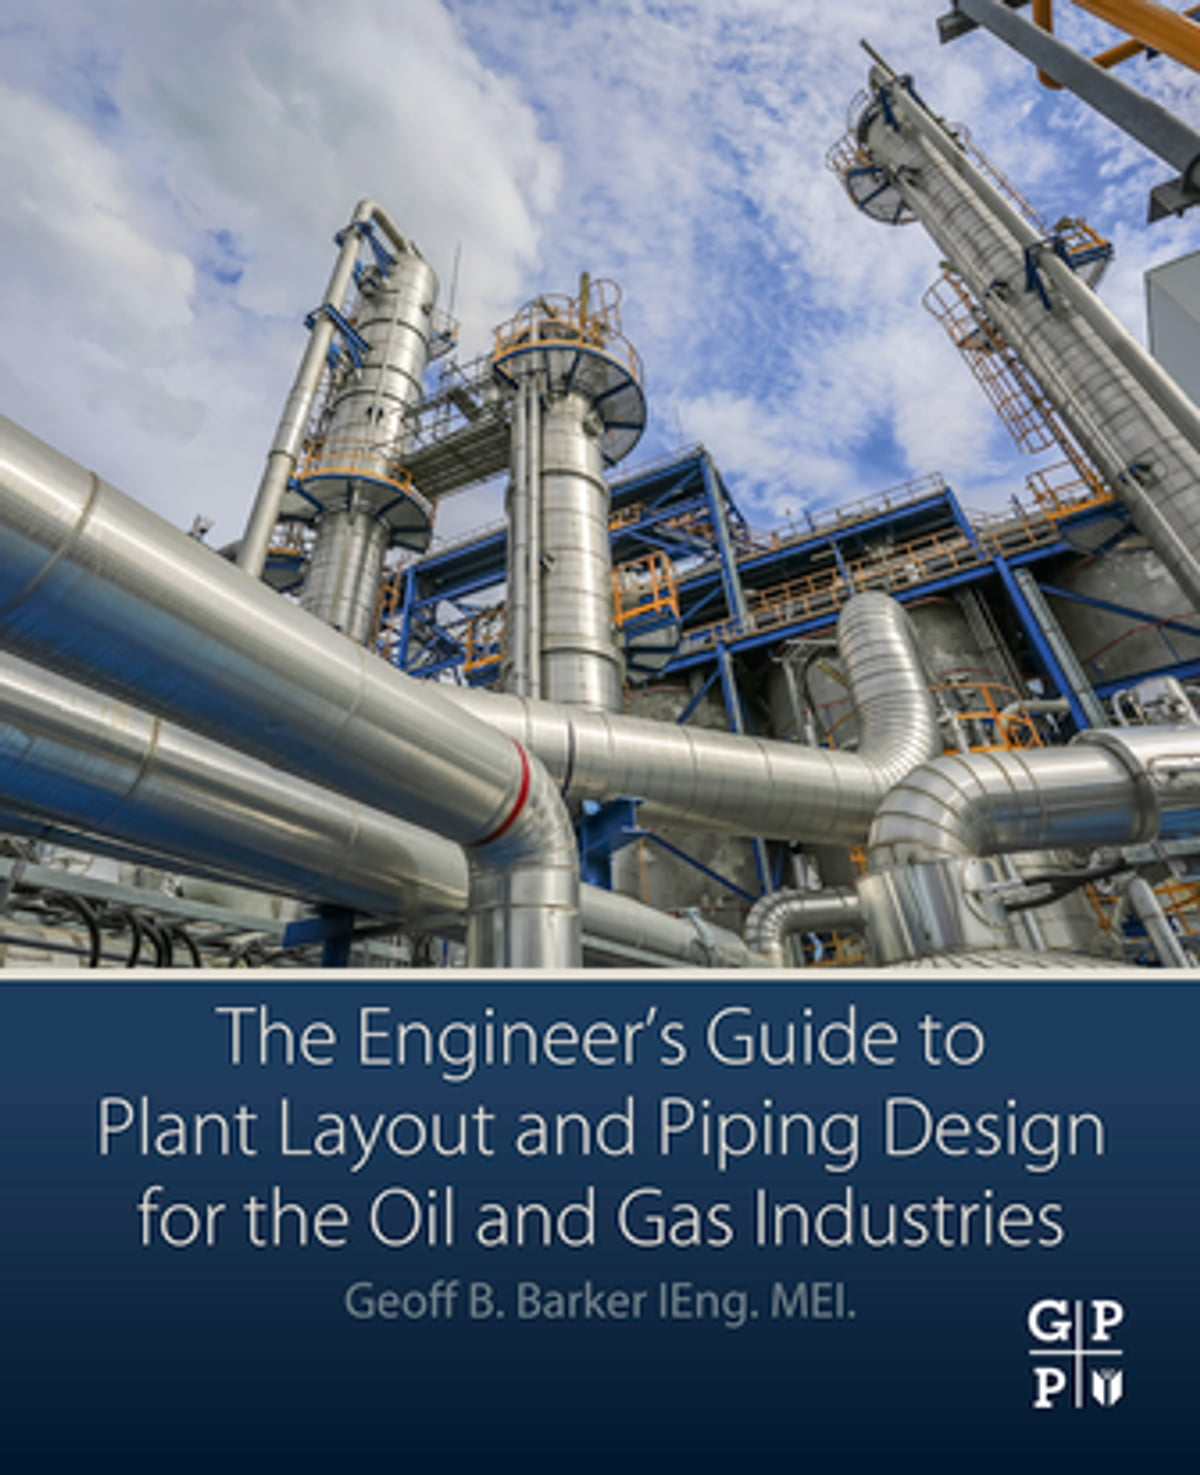 The Engineer's Guide to Plant Layout and Piping Design for the Oil and Gas  Industries eBook by Geoff B. Barker - 9780128146545 | Rakuten Kobo